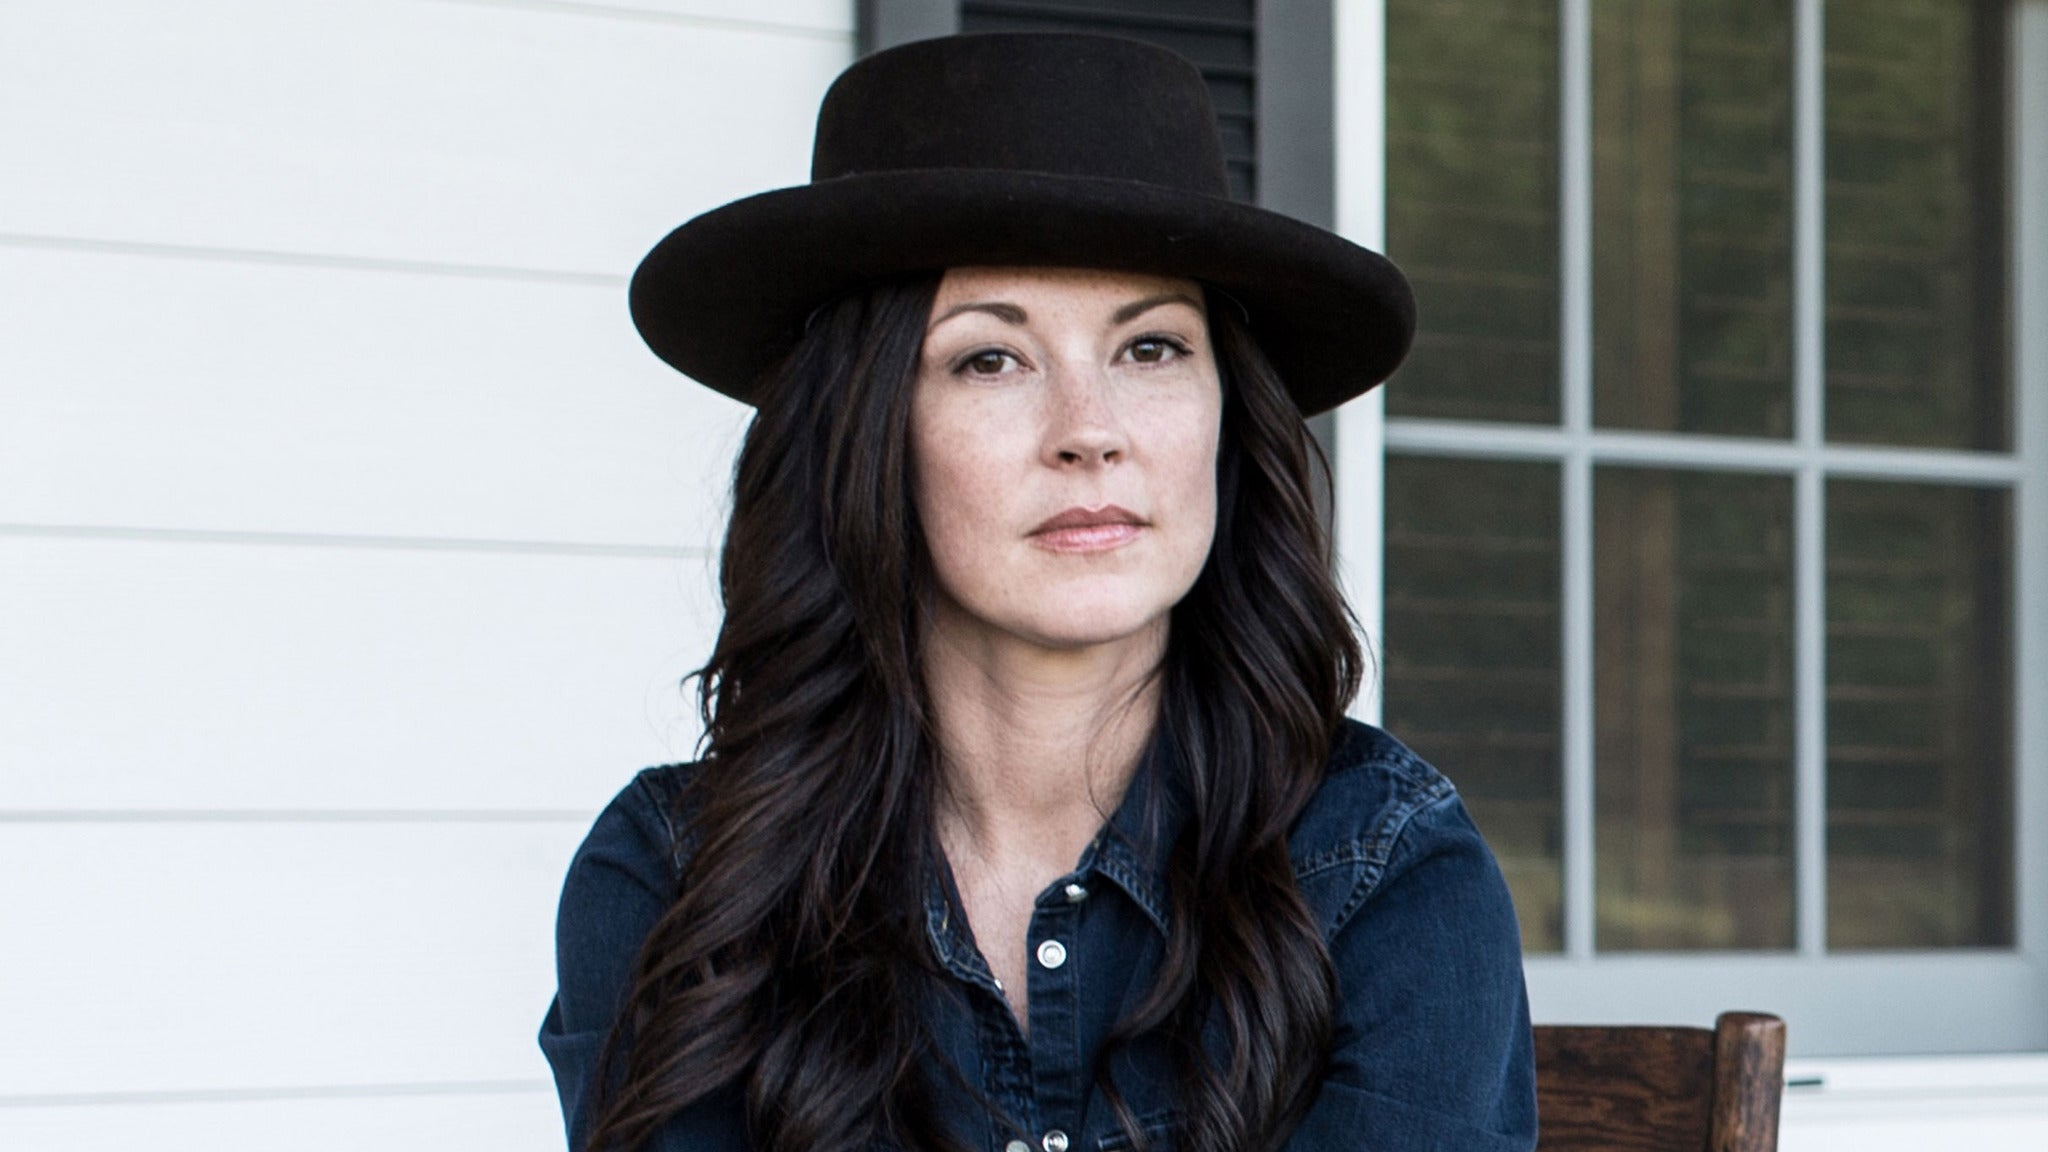 Amanda Shires at Hargray Capitol Theatre